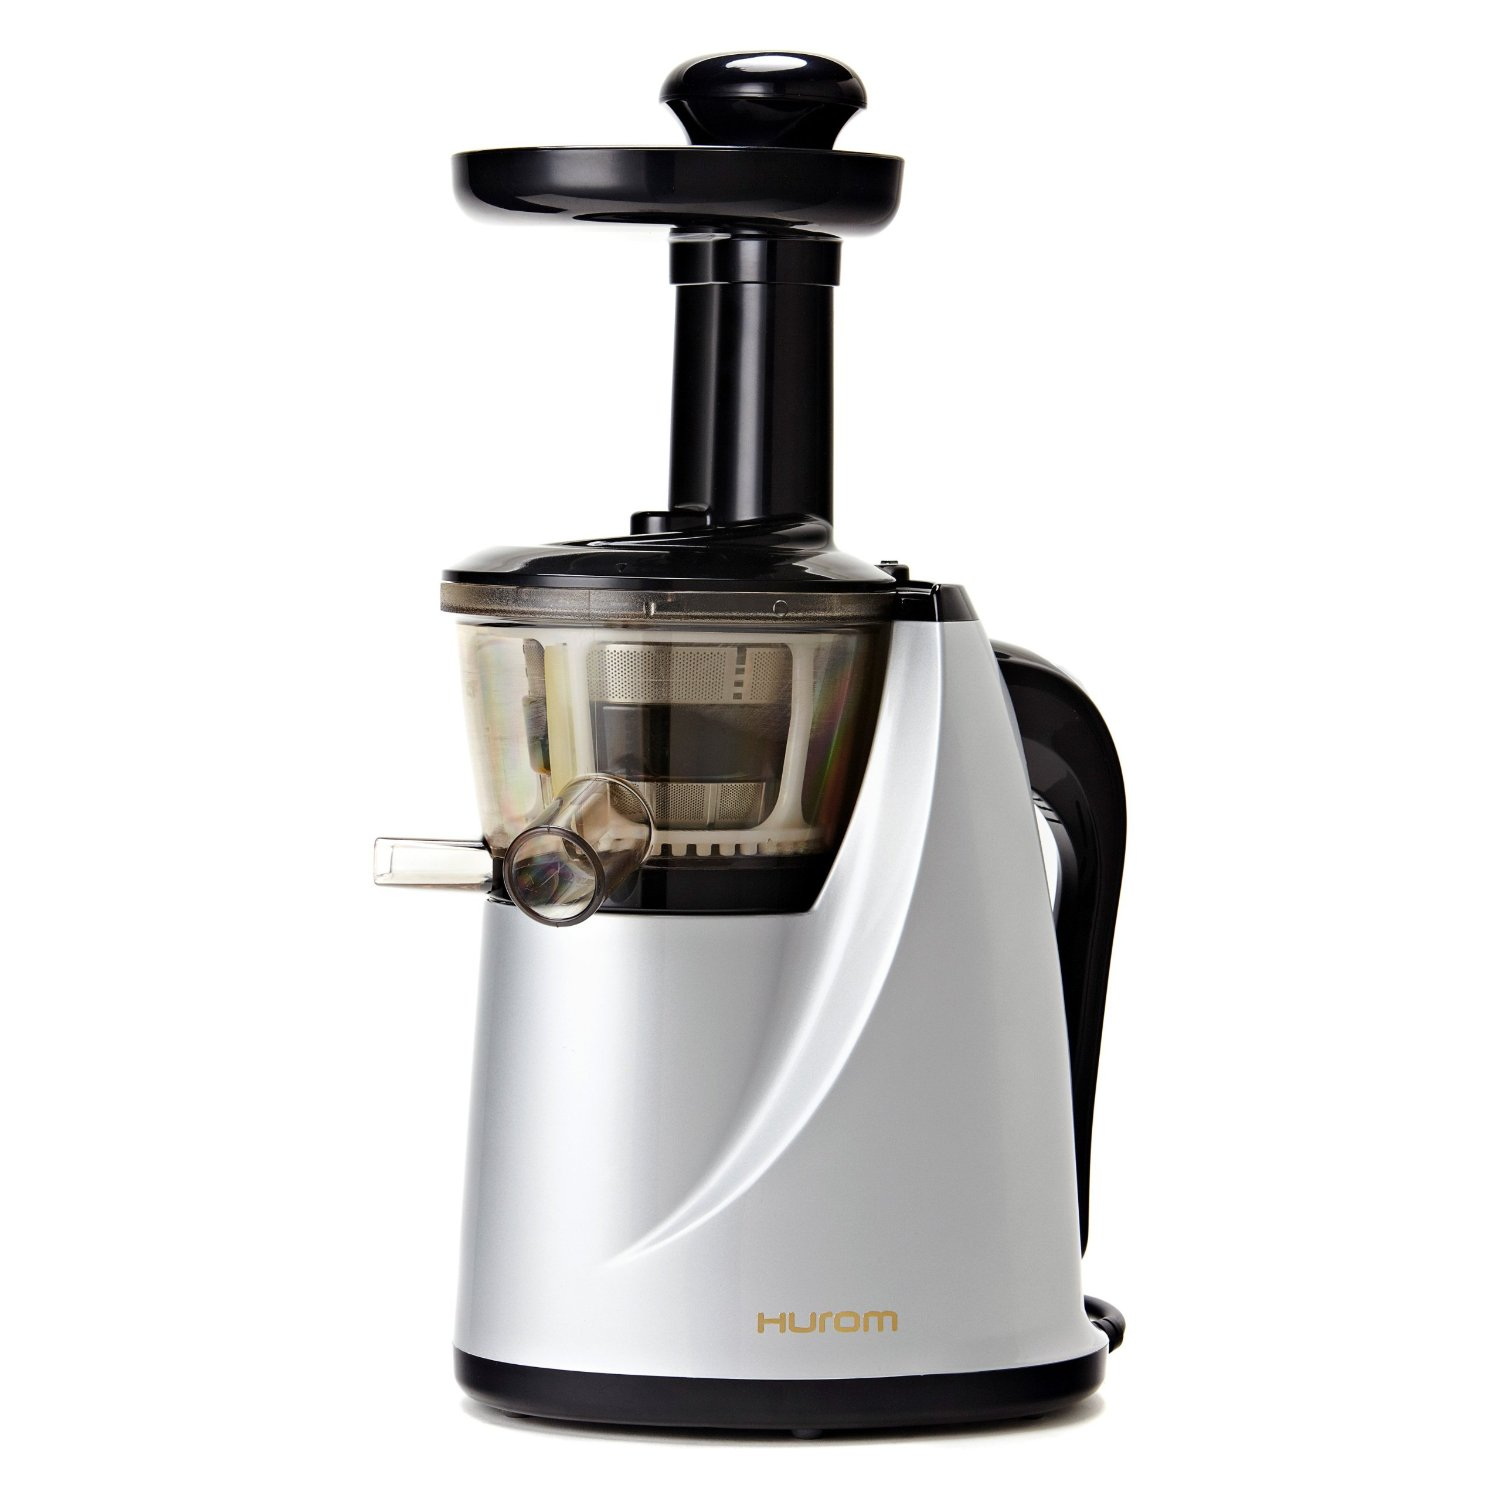 Hurom Slow Juicer Adalah : Hurom HU-100 Masticating Slow Juicer Review - Best Cold Press Juicers